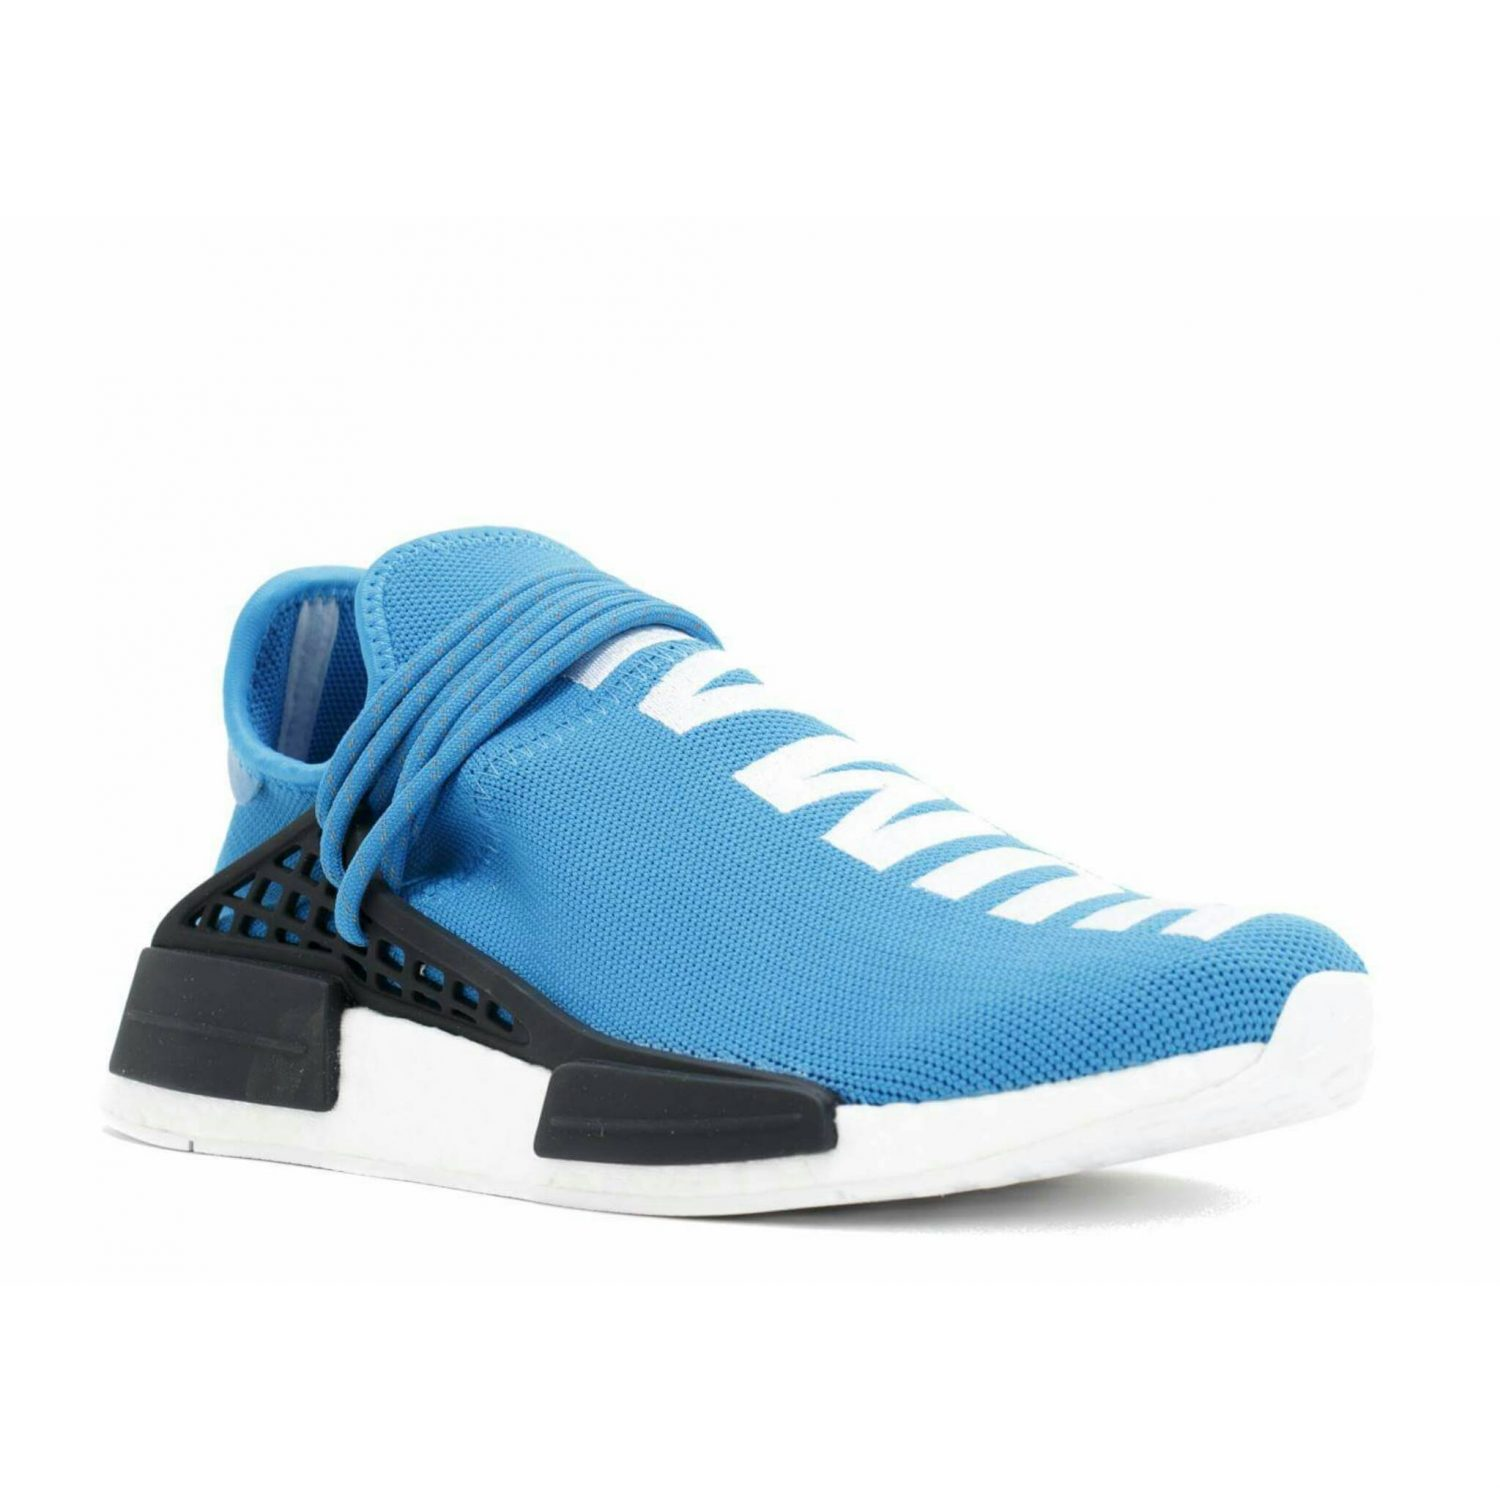 on sale 64f61 b61a8 NMD Human Race For Men - Shoes Online Shopping in Pakistan ...